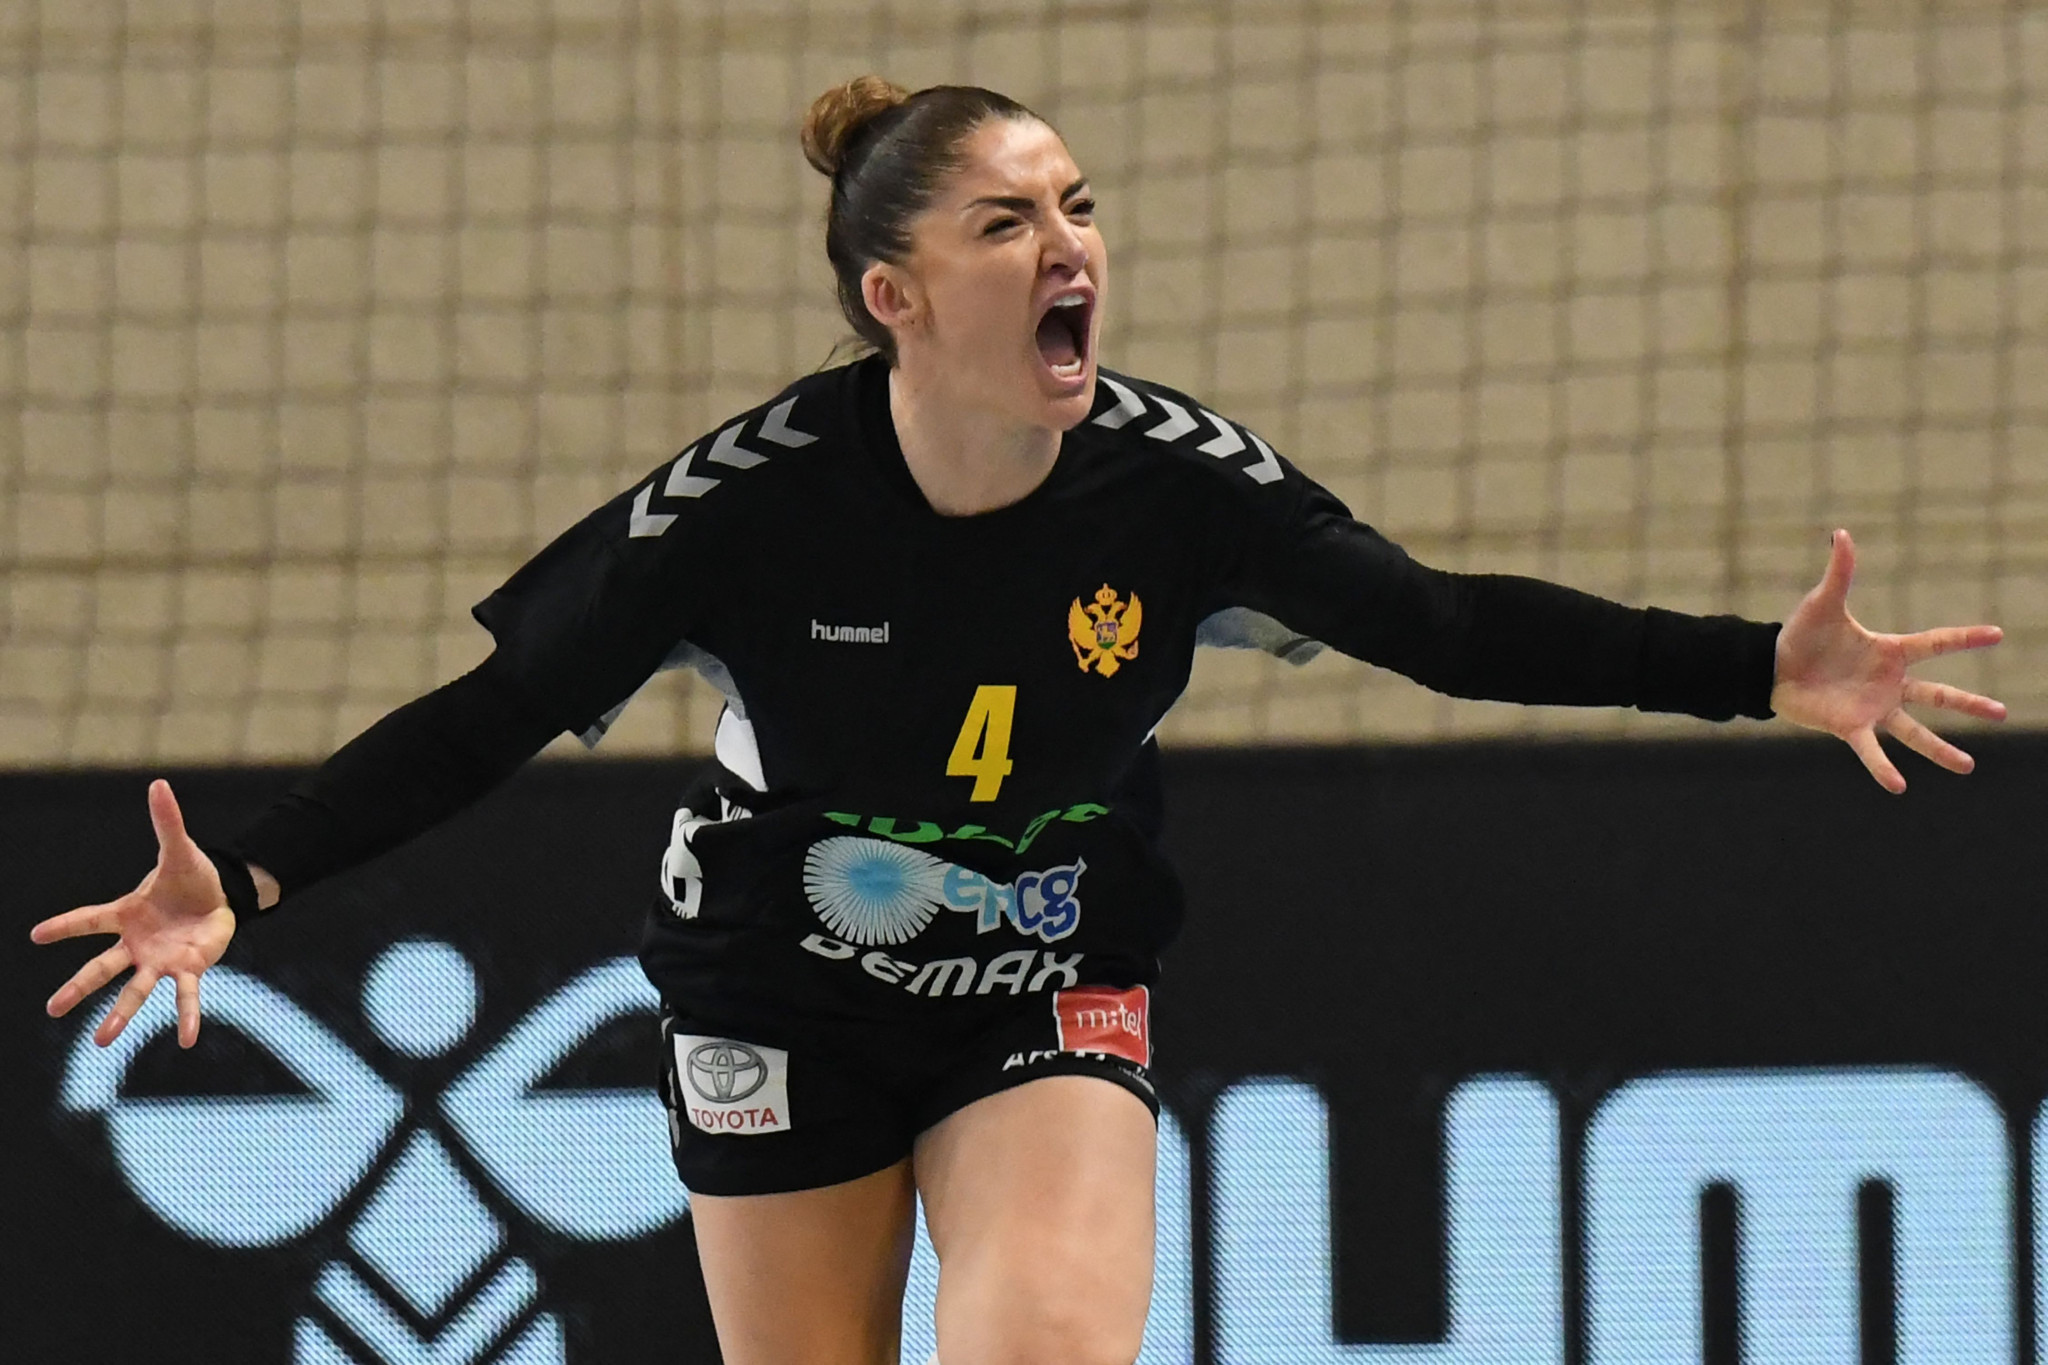 Montenegro celebrate their win over Norway on day one of their Tokyo 2020 women's handball qualification tournament - a victory that is a reversal of the outcome of the London 2012 gold medal match ©Getty Images